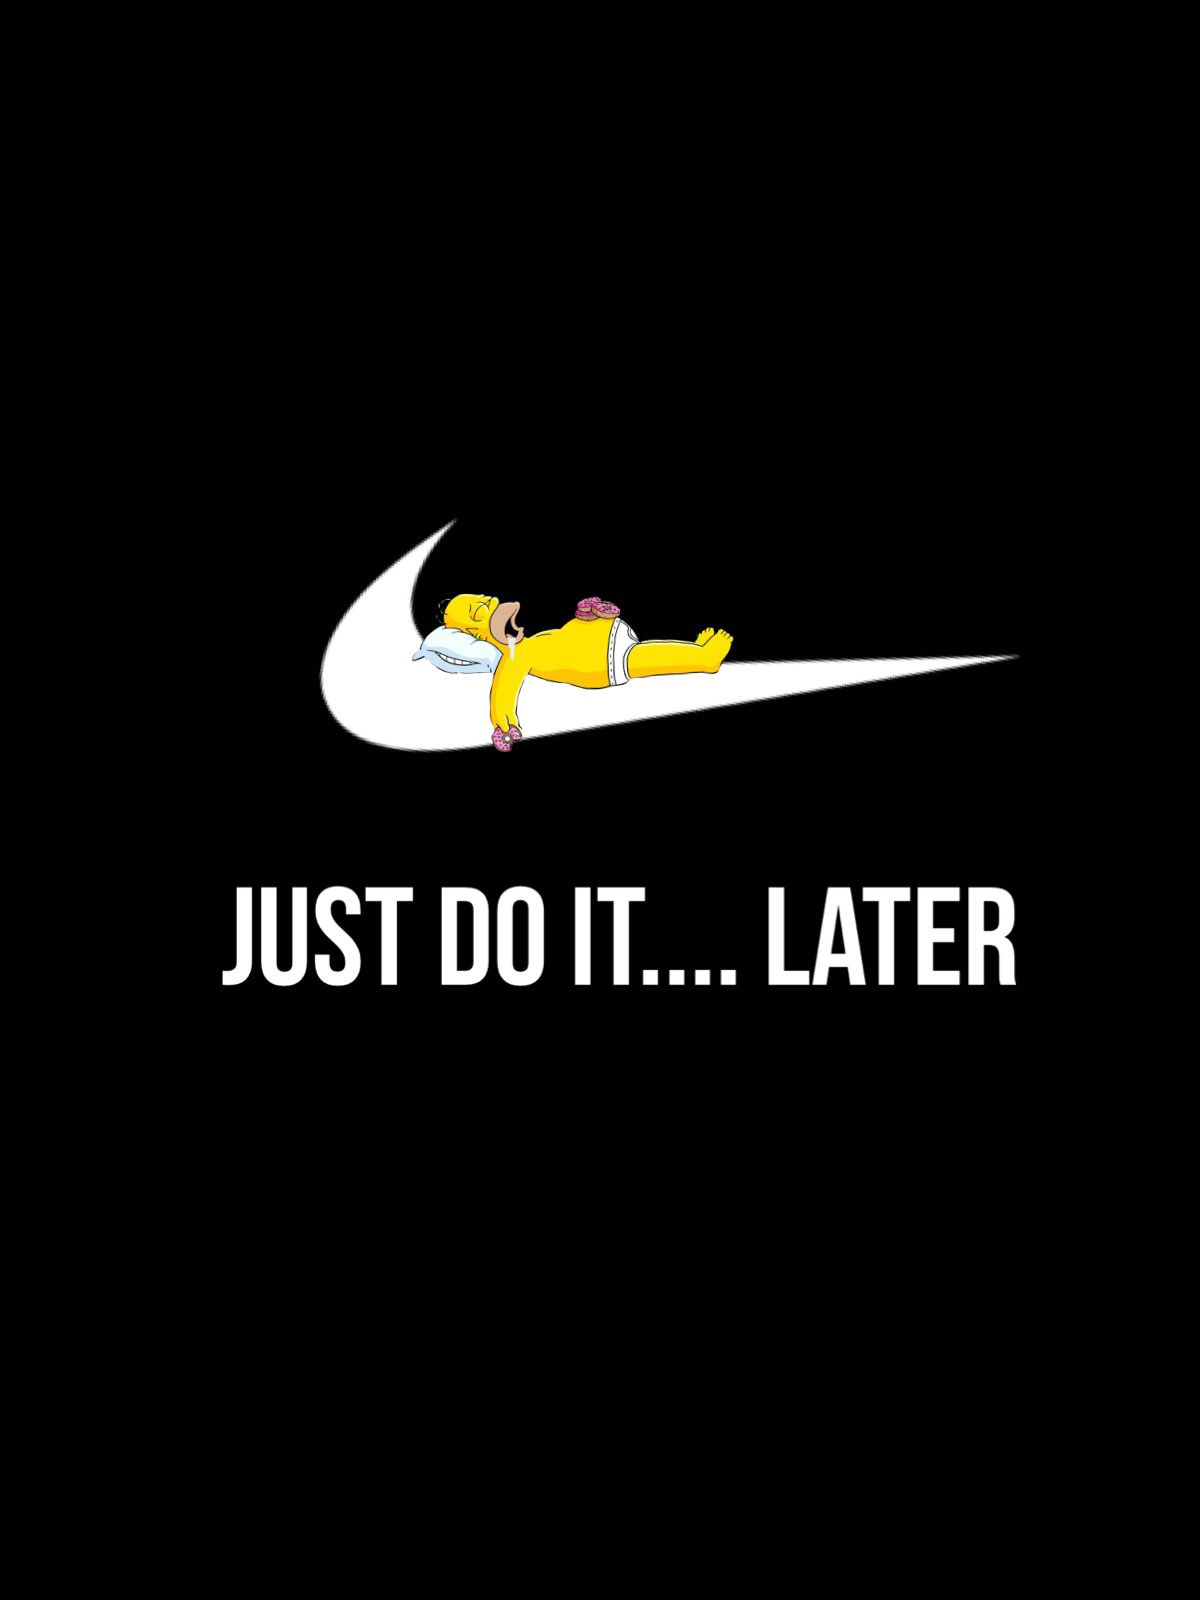 Funny wallpaper #wallpaper #marieghansen | iPhone | Funny wallpapers, Nike wallpaper, Funny